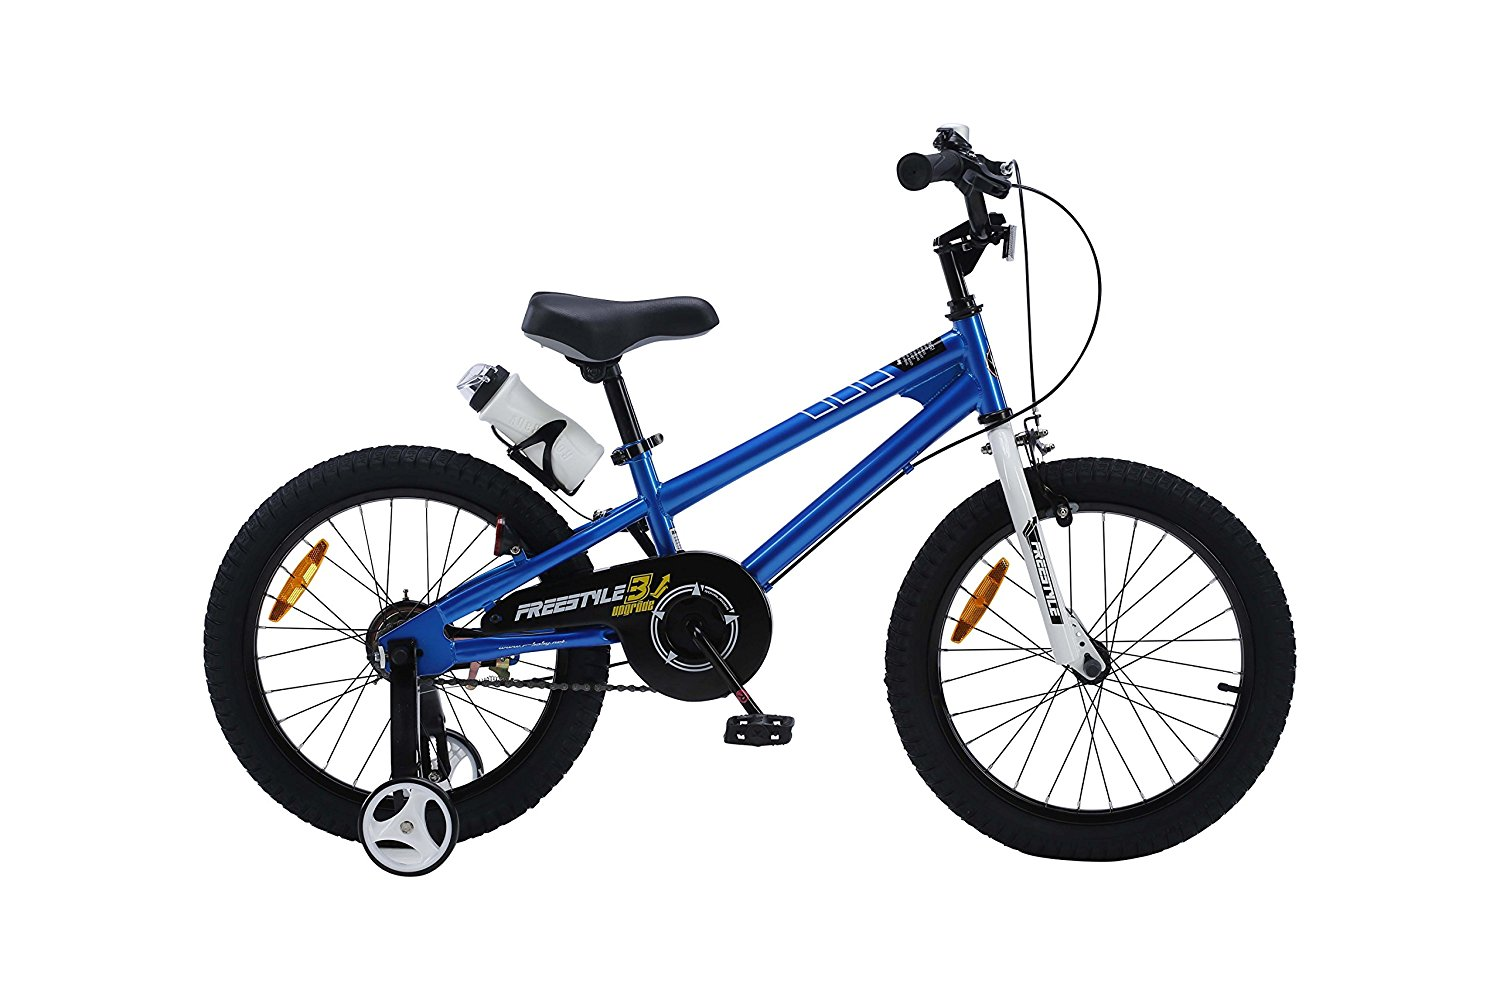 RoyalBaby 12 inch Kid's Bike, Boy's Bike, Girl's Bike Balance Bike, Running Bike, Push Bike, No Pedal Bike